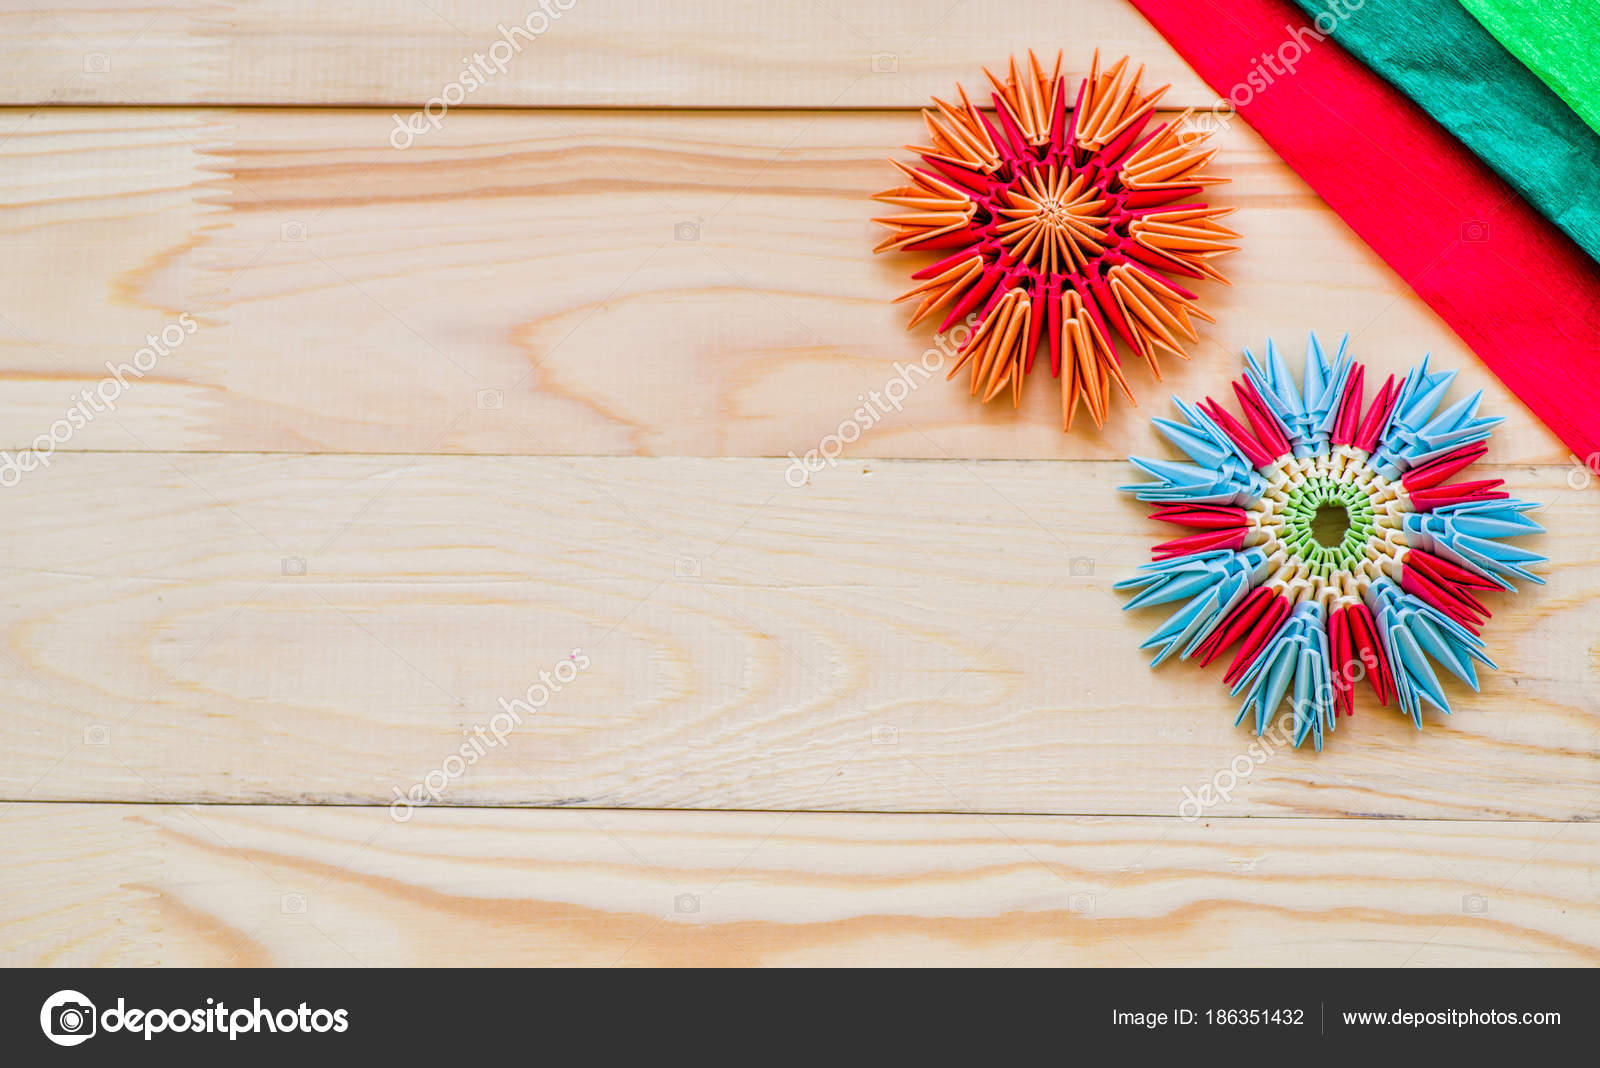 Modular Origami Flowers On Rustic Wooden Background With Paper